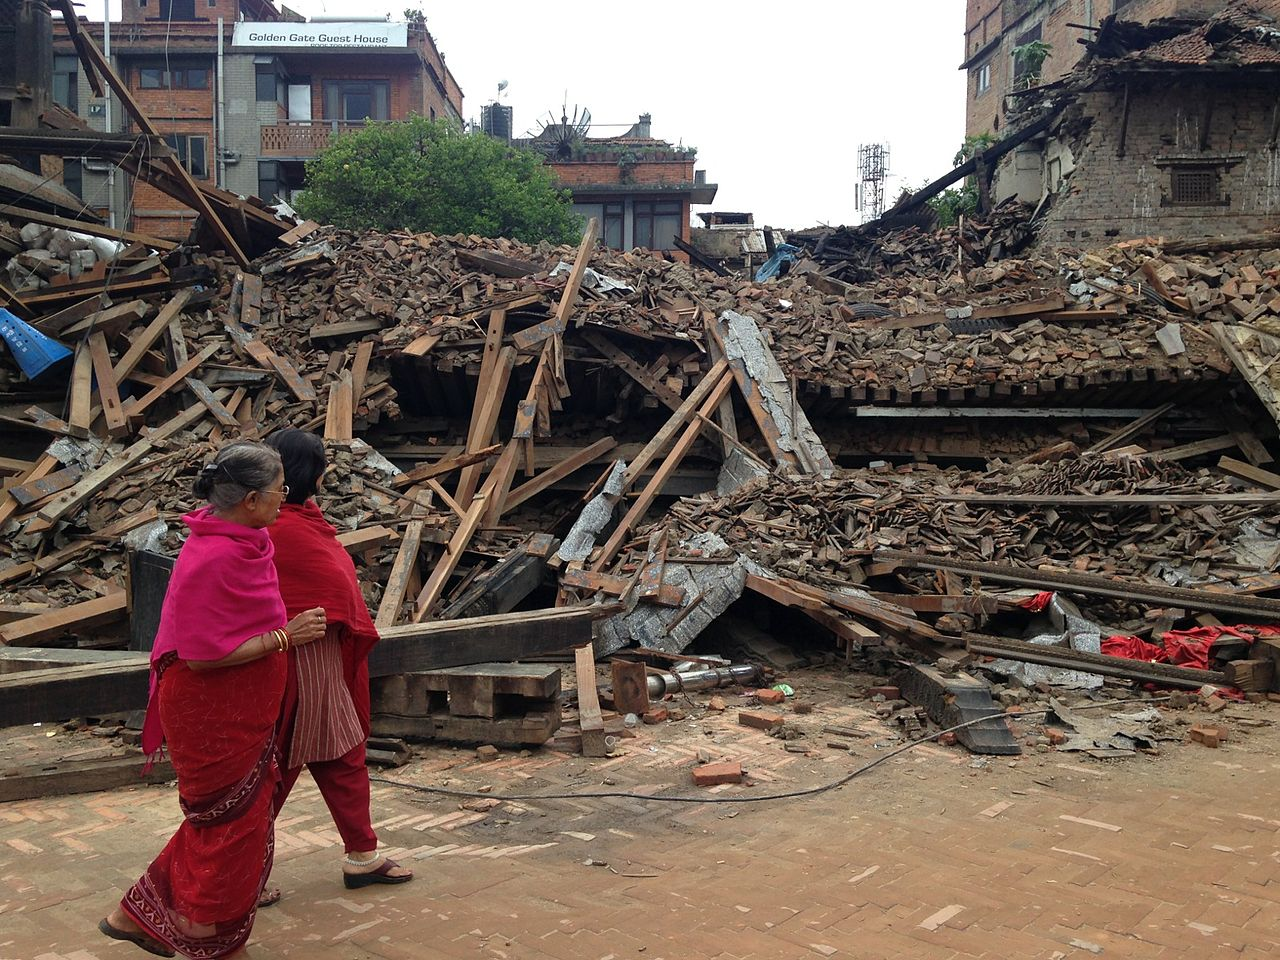 Women walk past buildings destroyed in Bhaktapuin by the April 2015 earthquake in Nepal